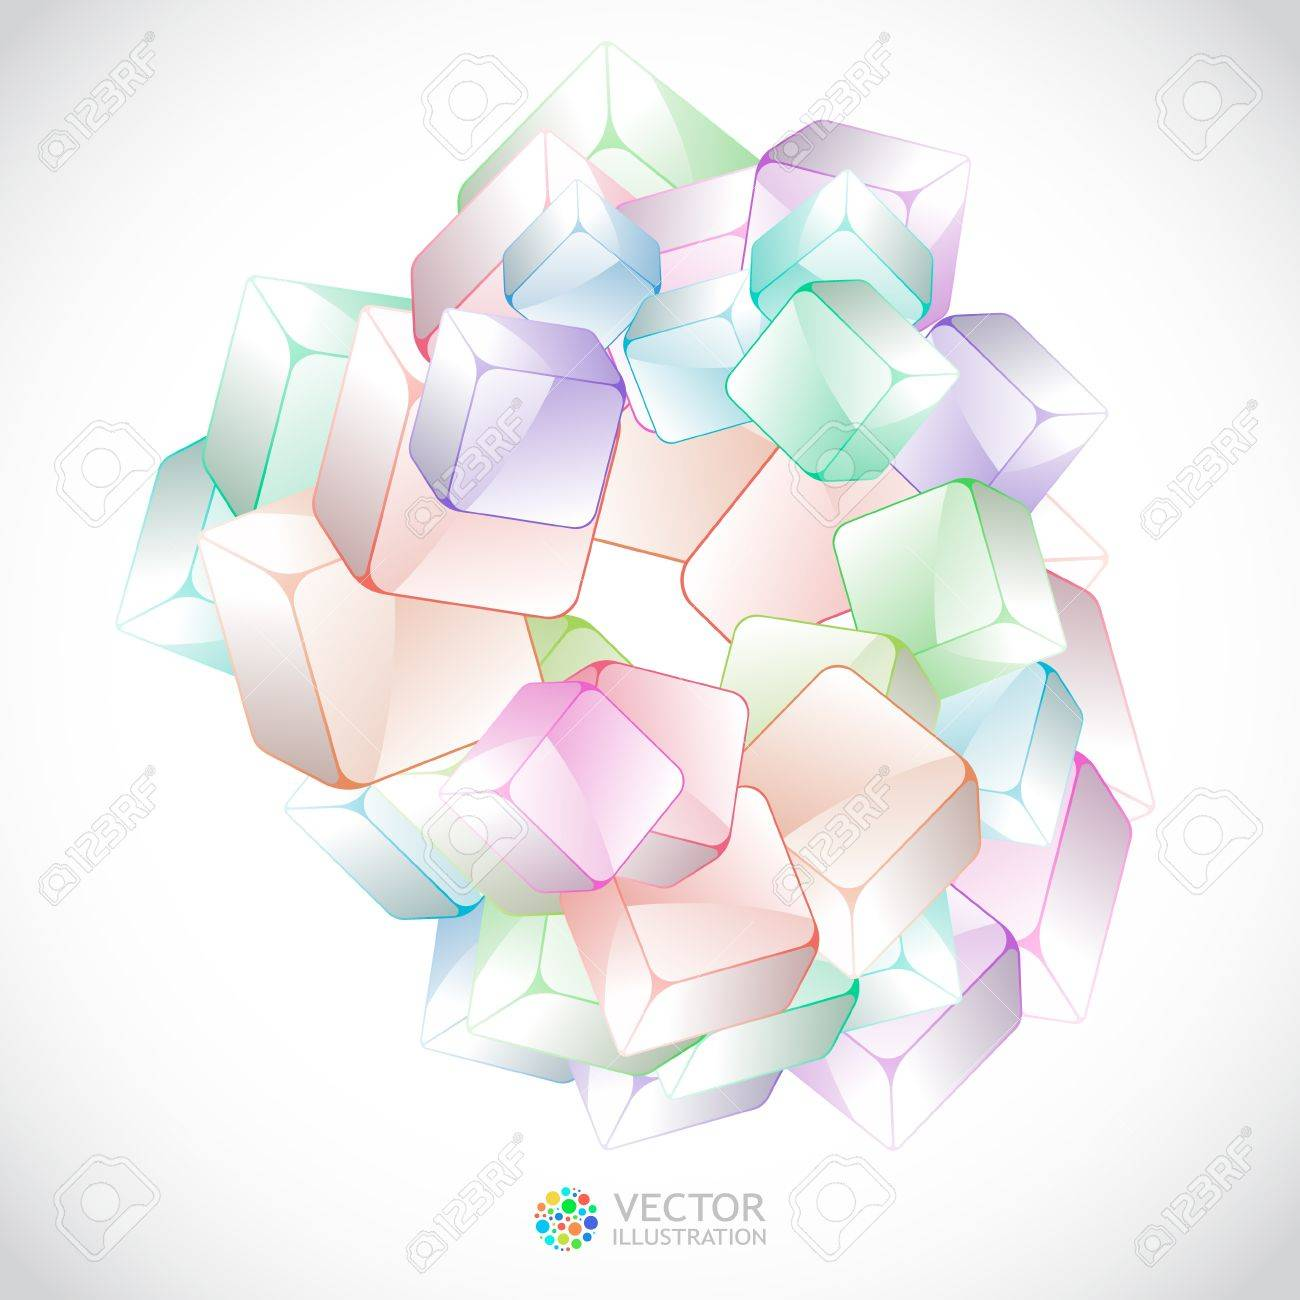 Abstract crystals background. Stock Vector - 11254452